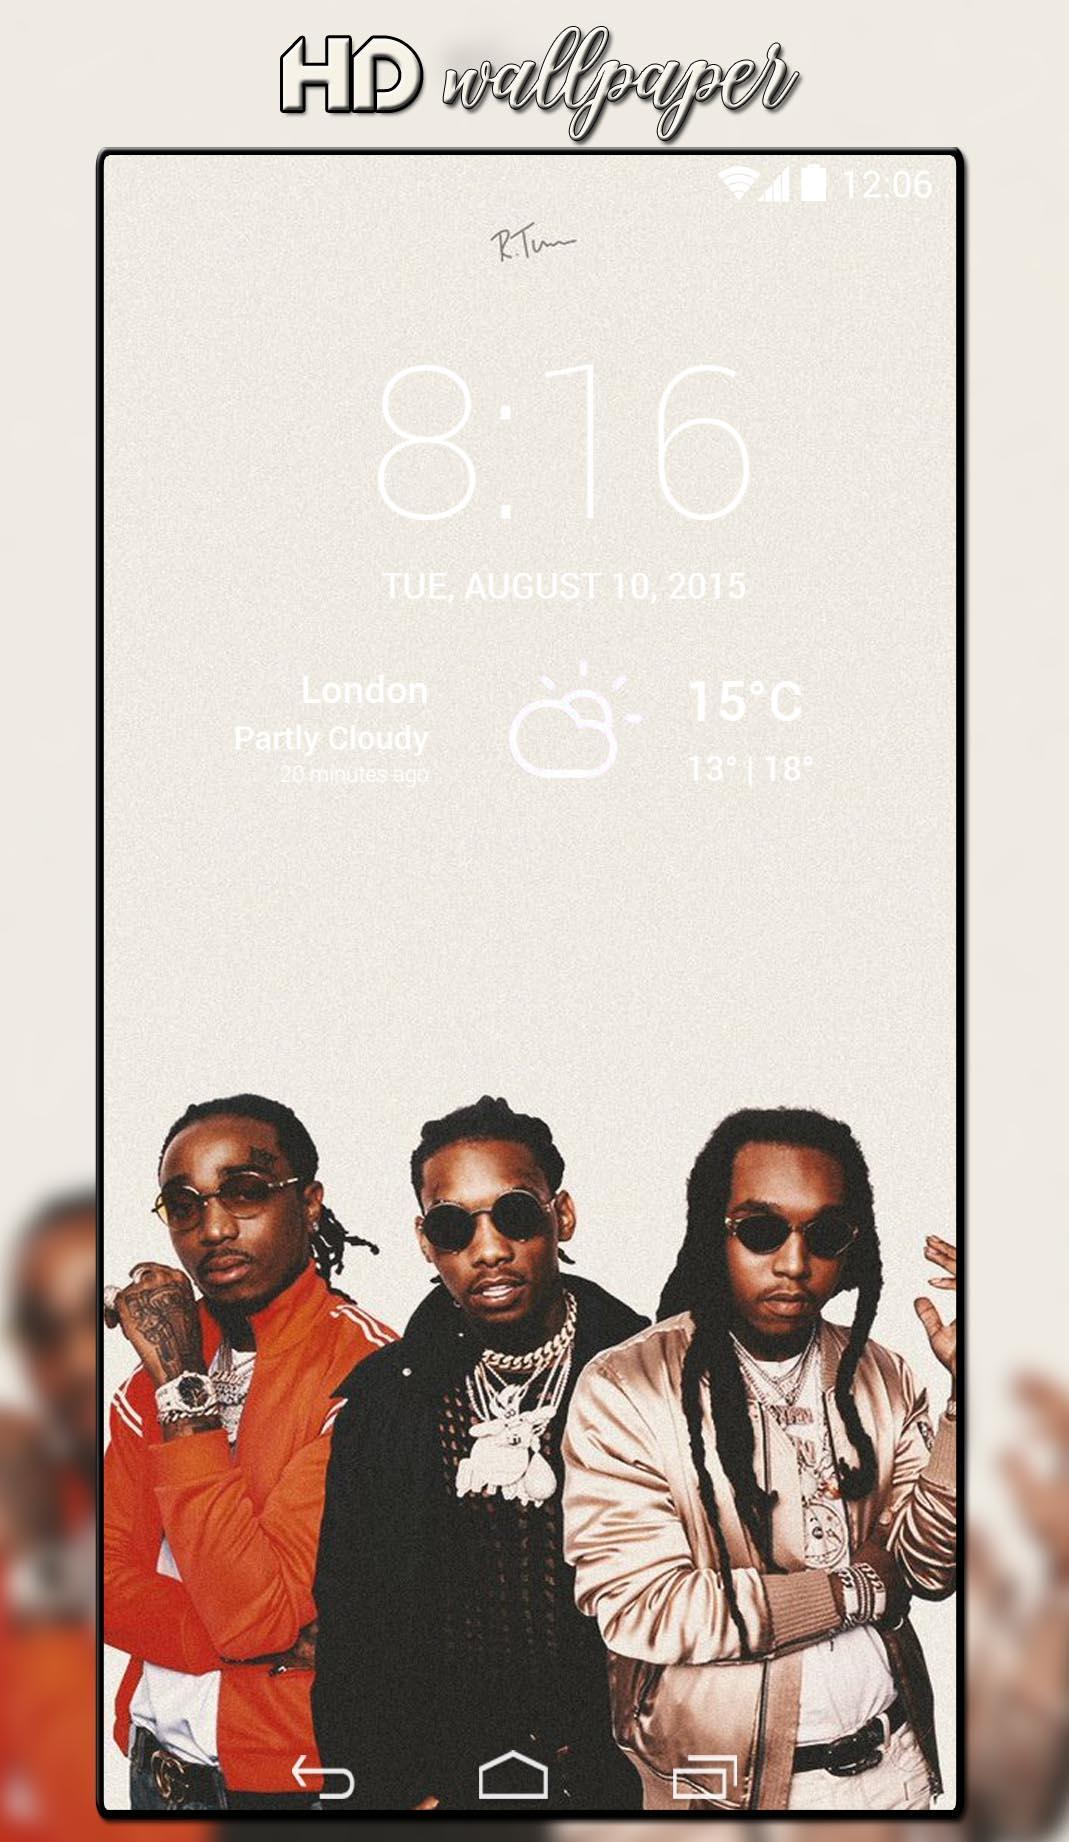 Migos Wallpaper HD for Android   APK Download 1069x1842